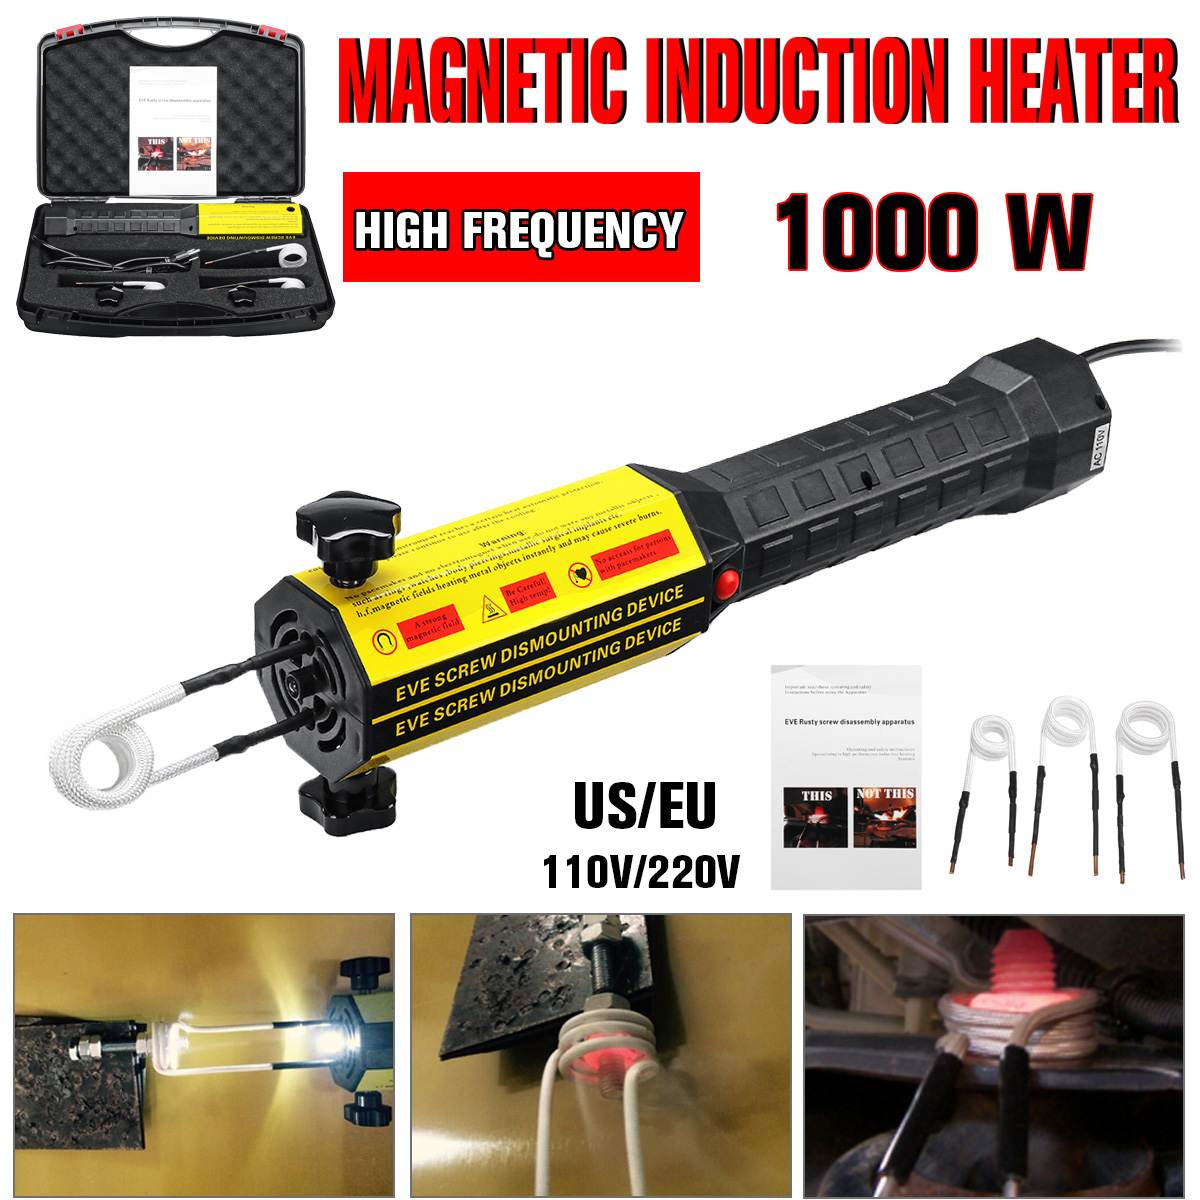 Induction Heater Bolt Heat Disassembler Screw Tool 220V/110V Magnetic Induction Heater Kit Heating Bolt Remover Car Repair Tool